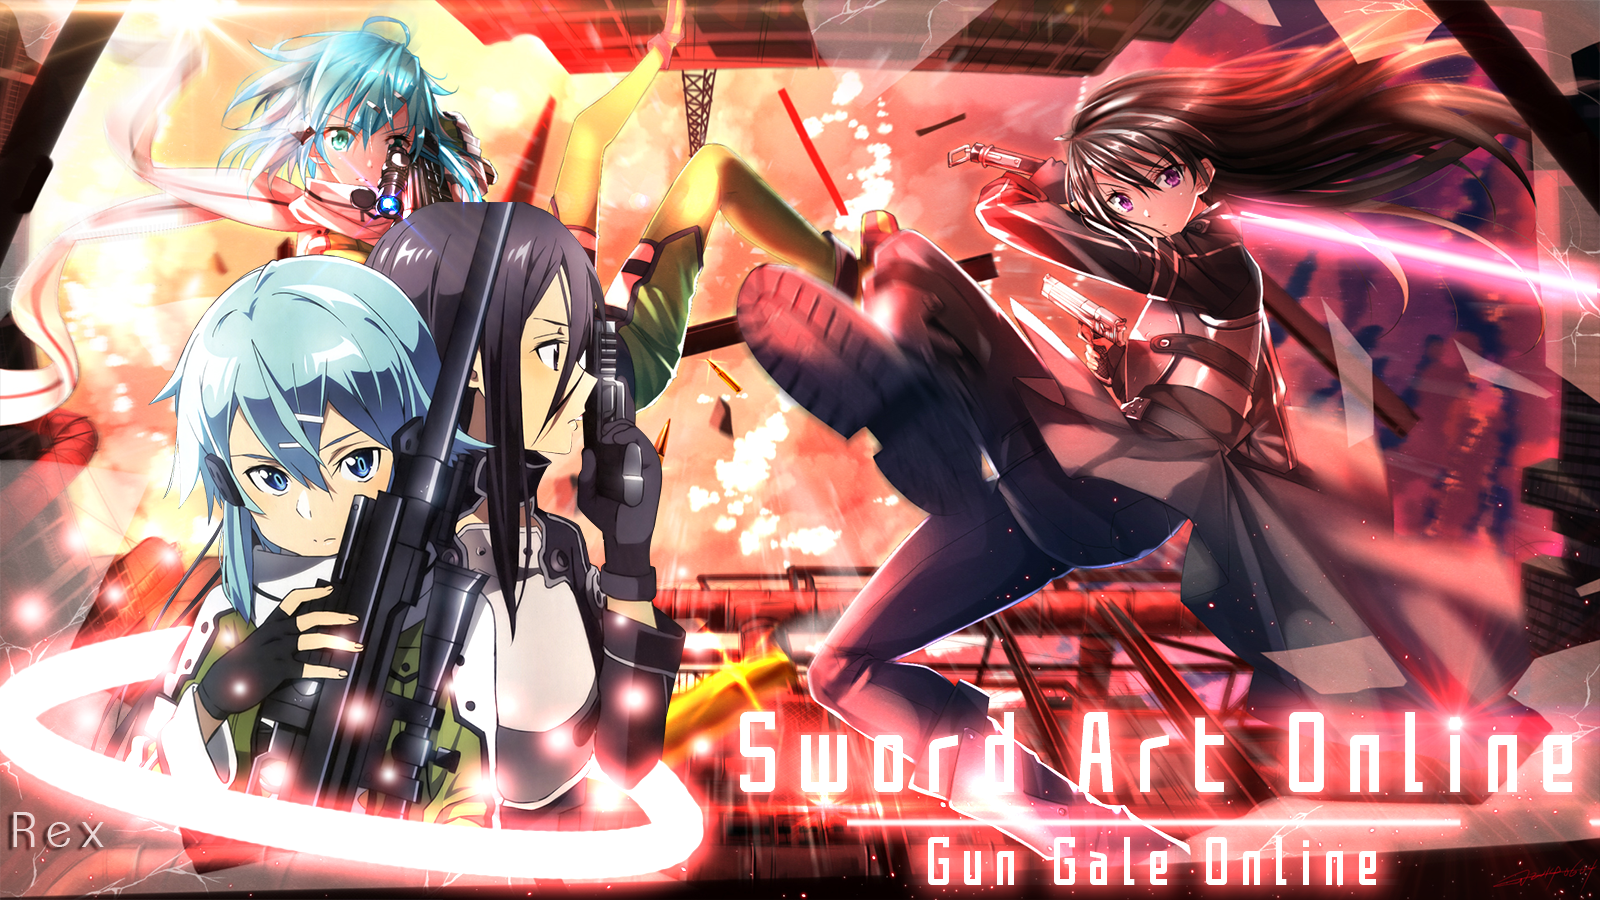 Wallpaper Sword Art Online 2 Gun Gale Online By Design Rex On